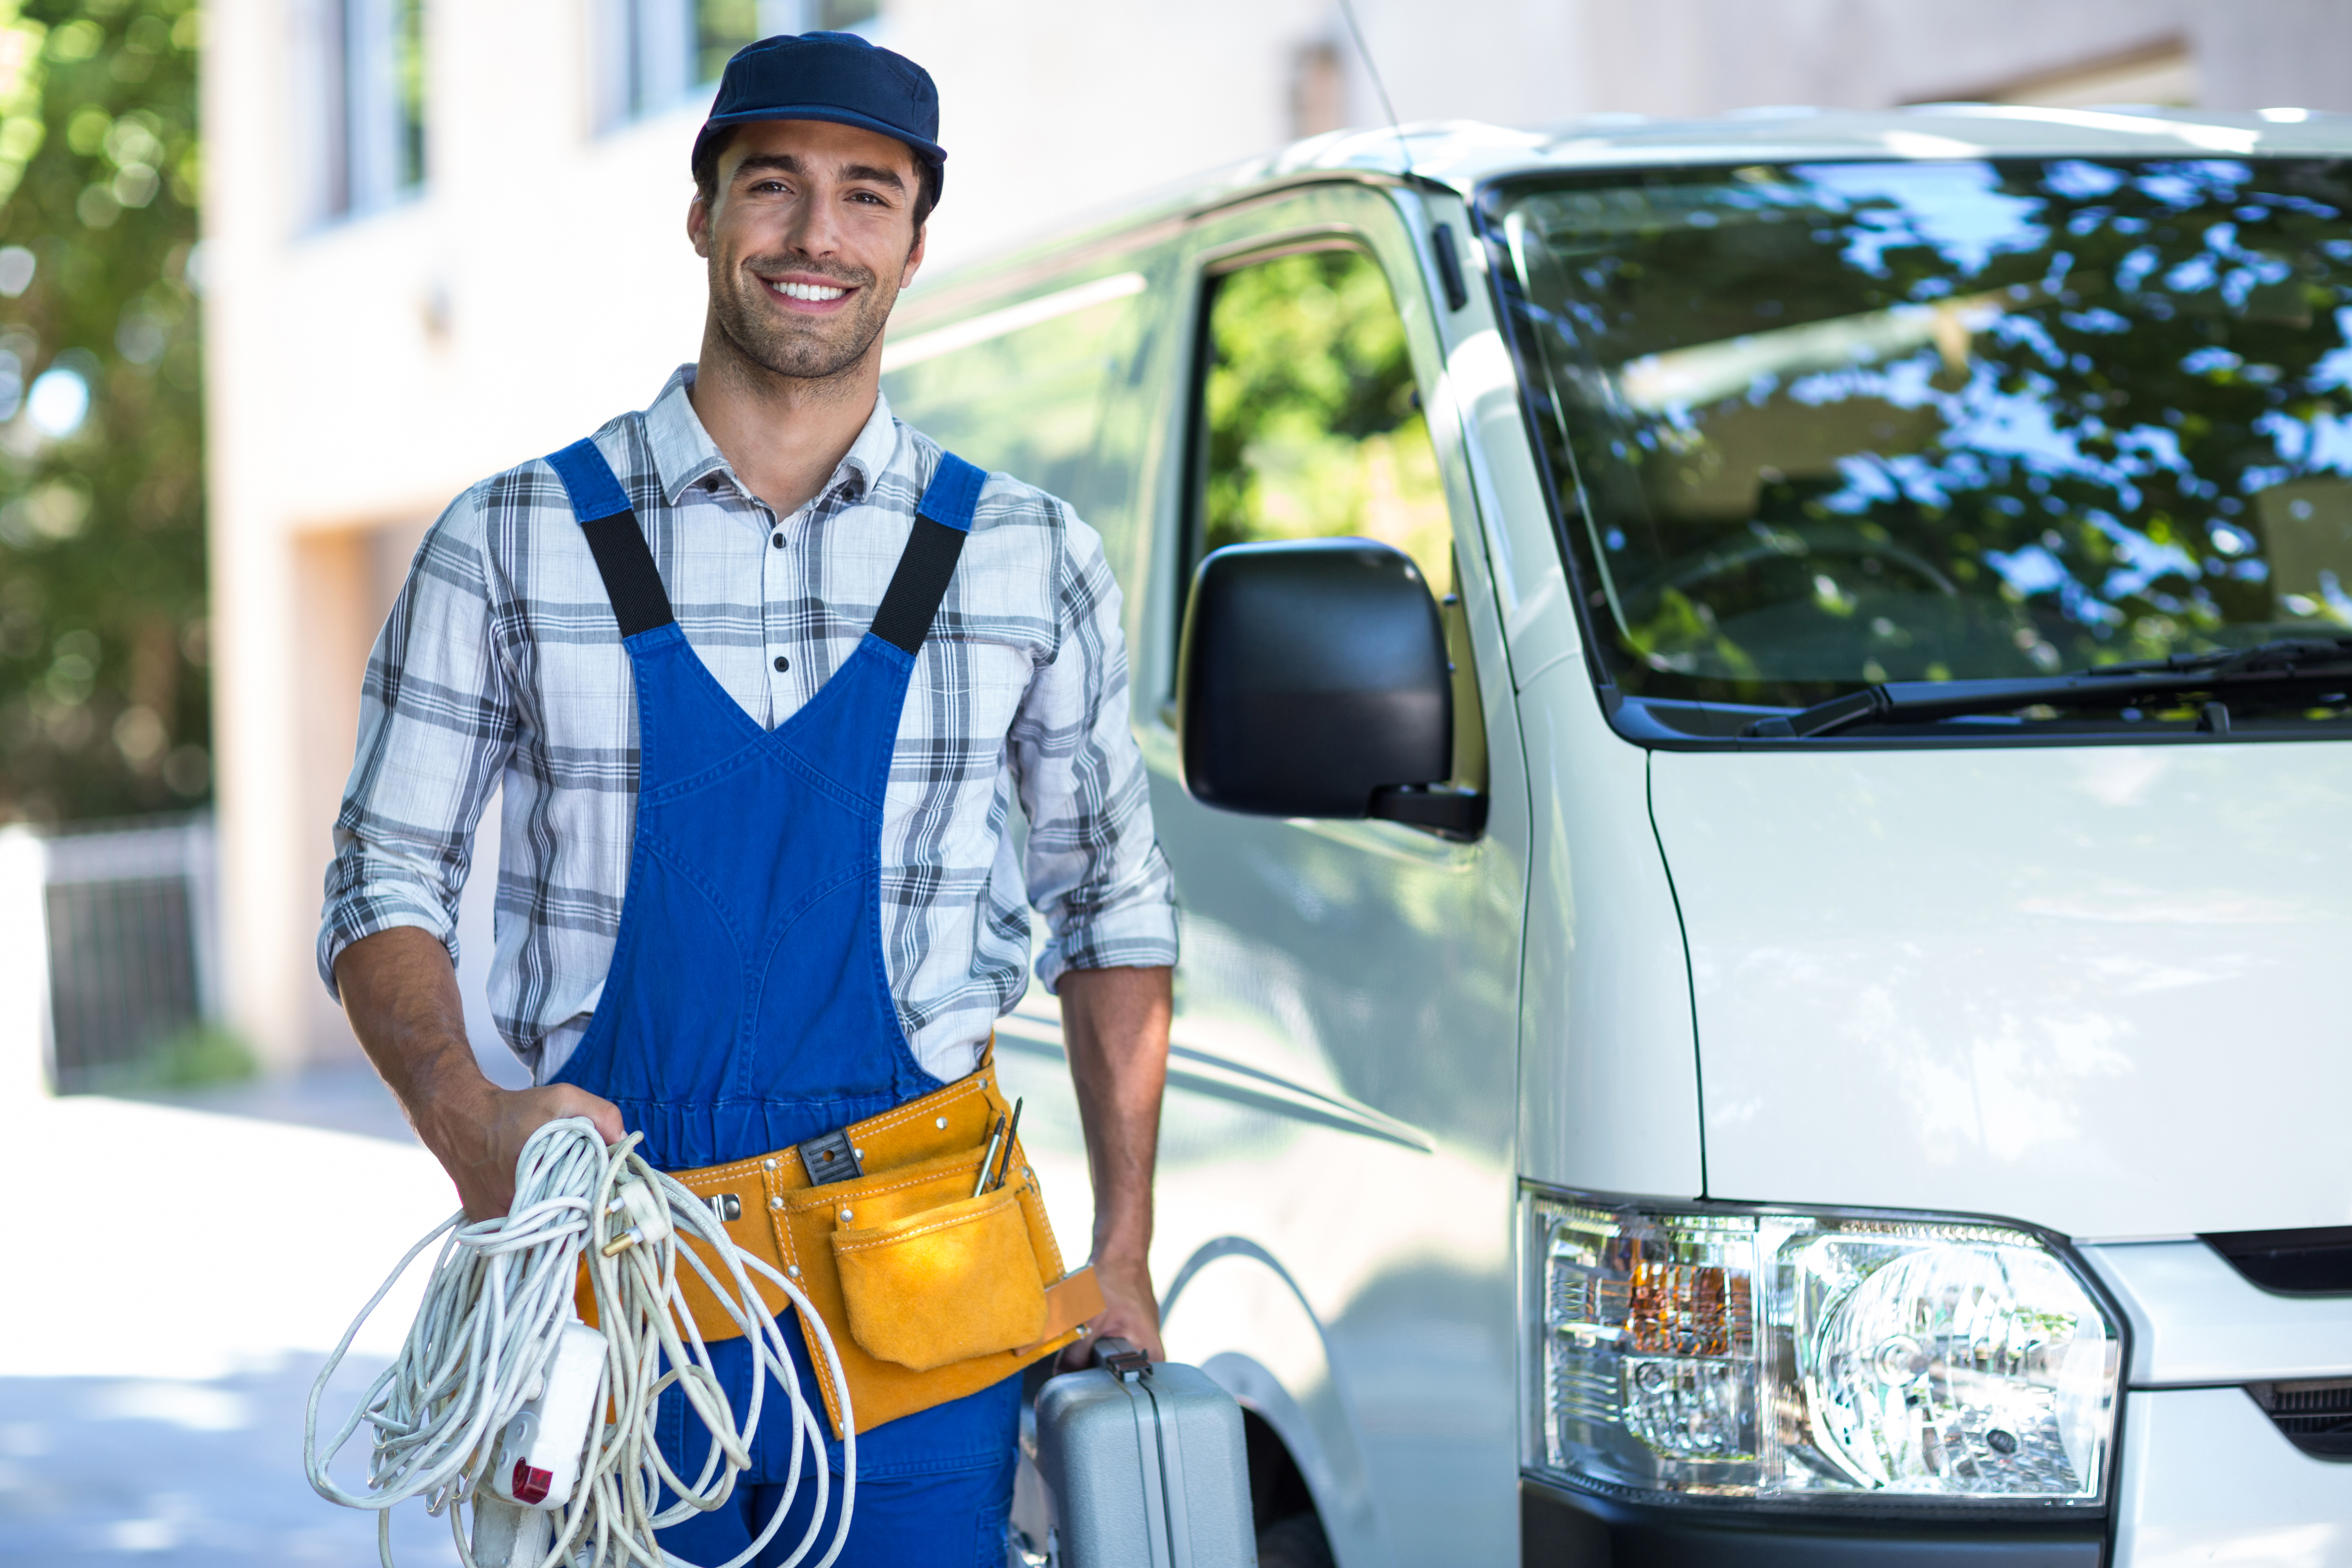 8 Tips for Organising an Electrician's Van